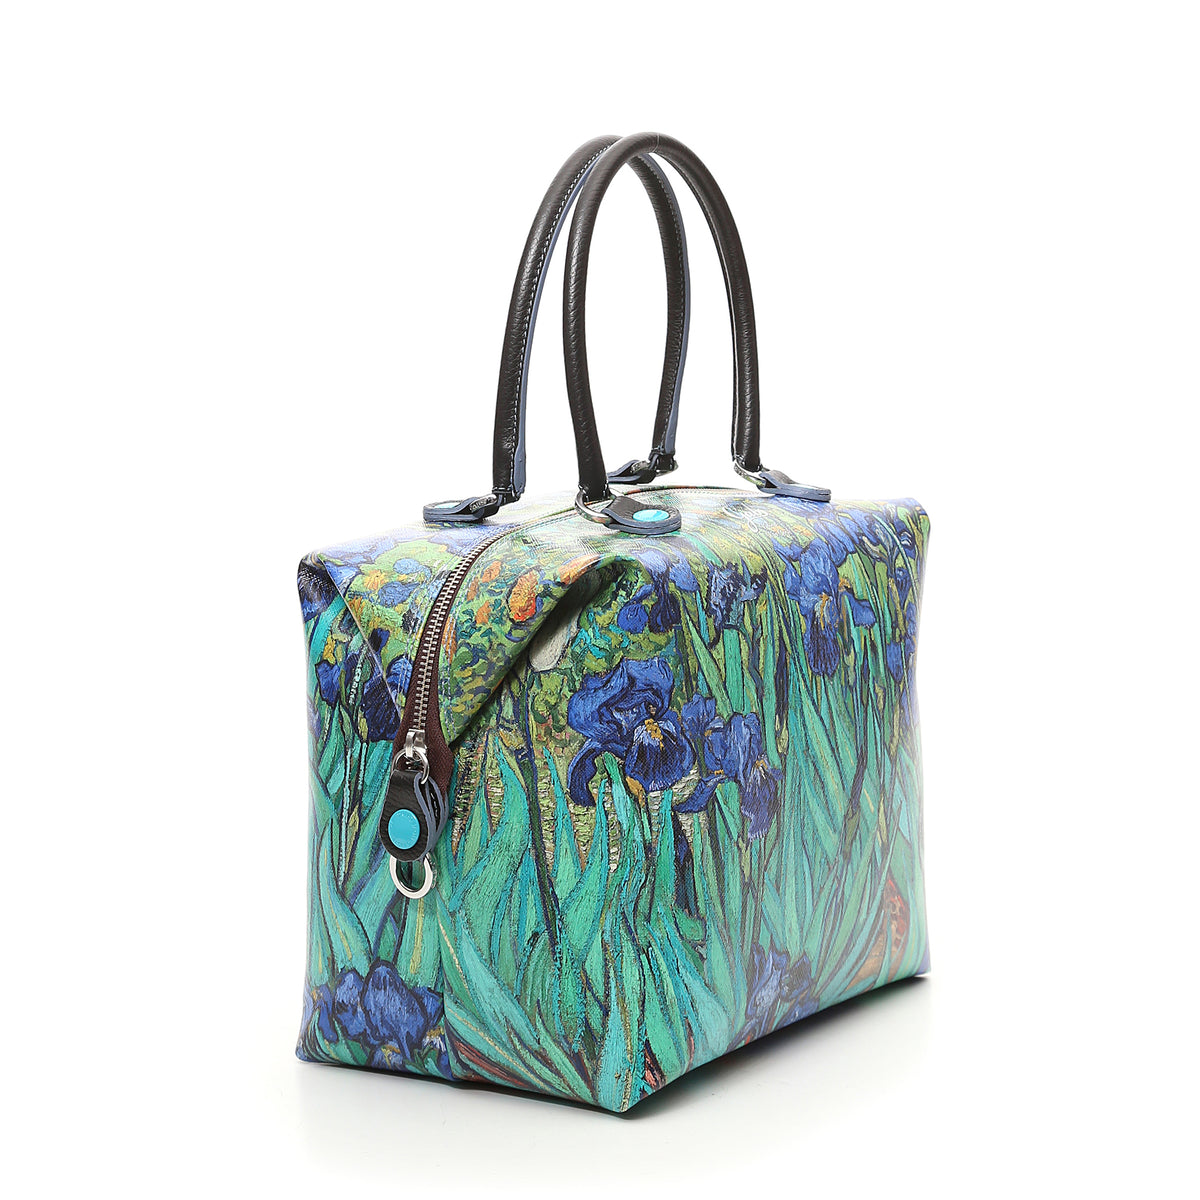 Large Convertible Hand Bag featuring Van Gogh's Irises by Gabs, Italy | Getty Store